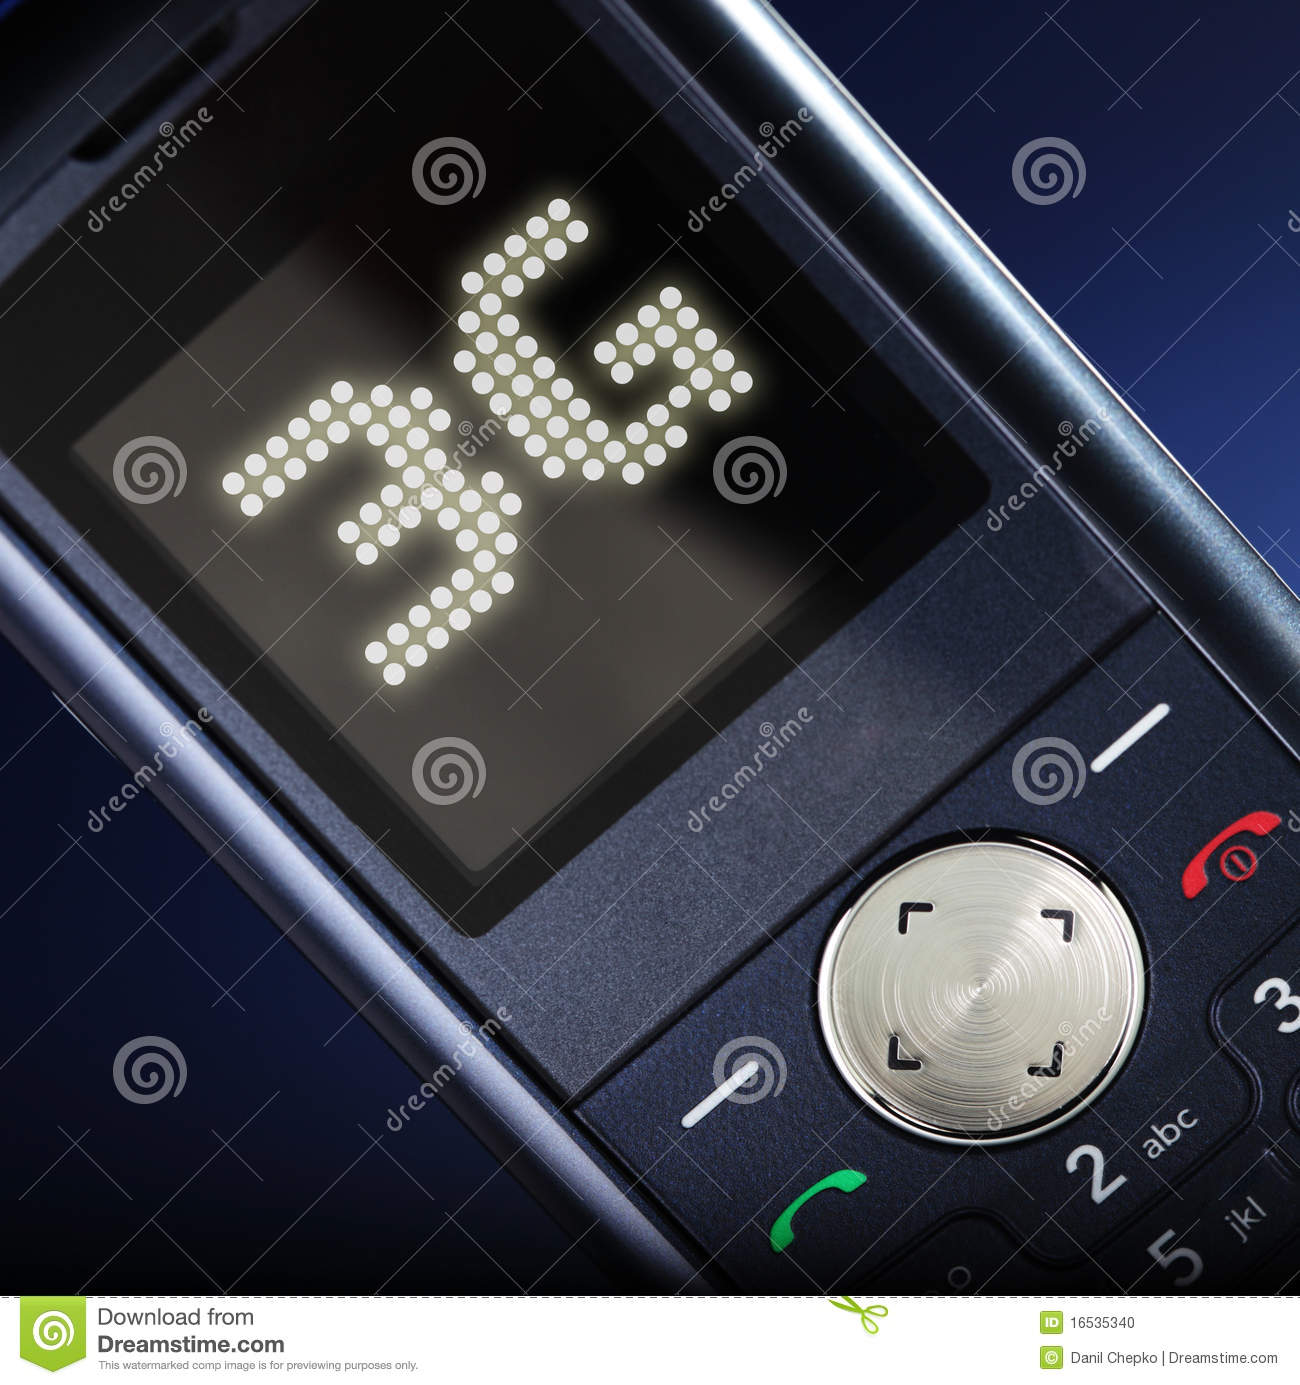 3G vs. 4G: What's the Difference?